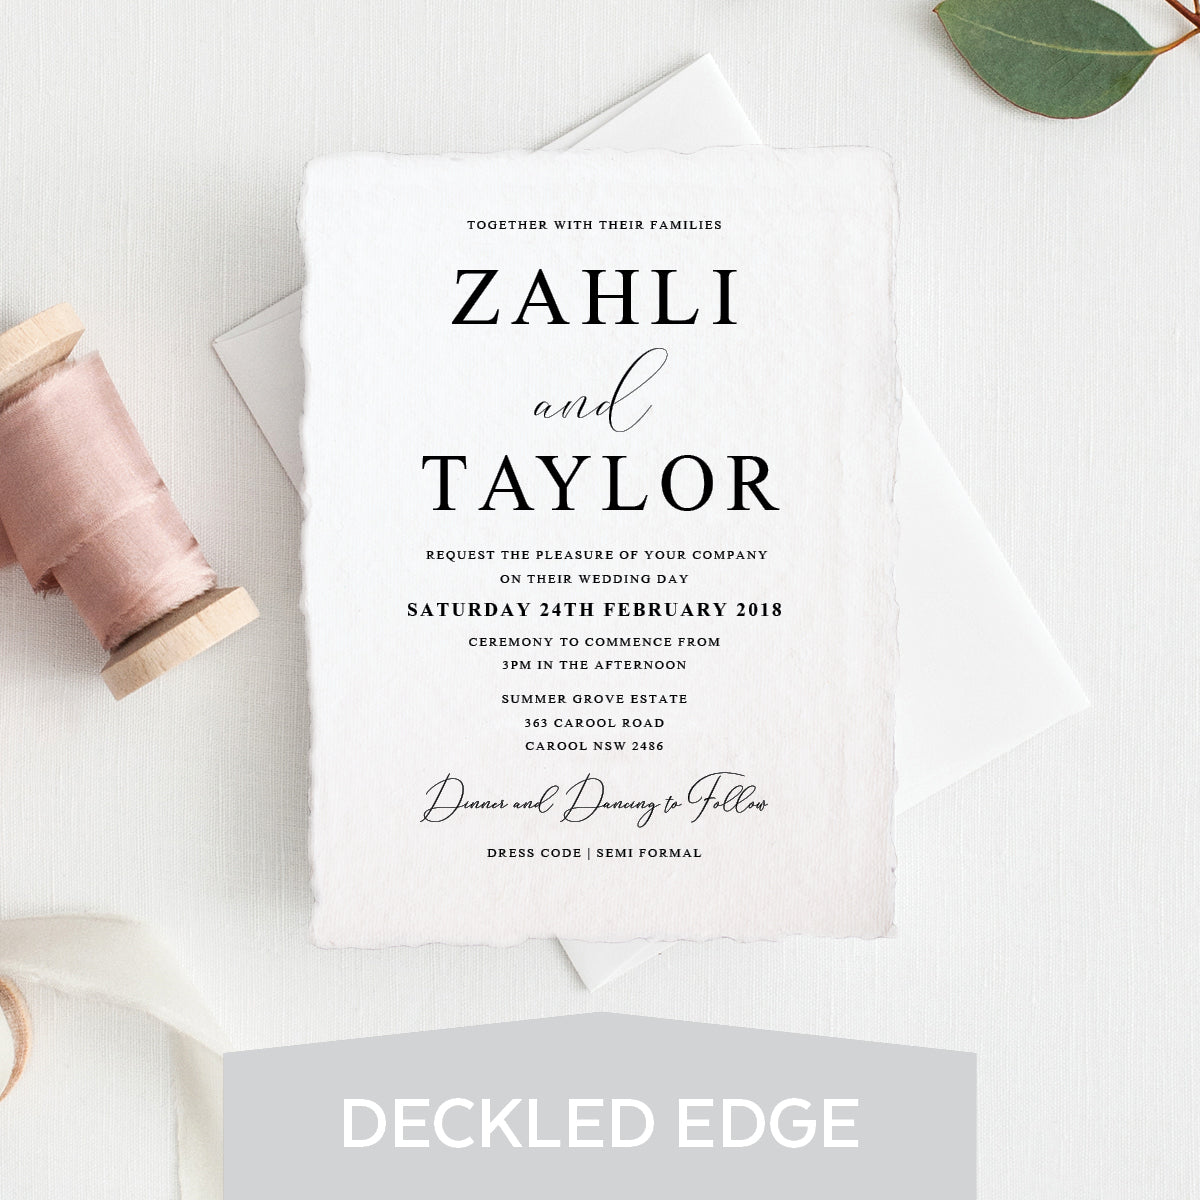 Serendipity Deckled Edge Invitation